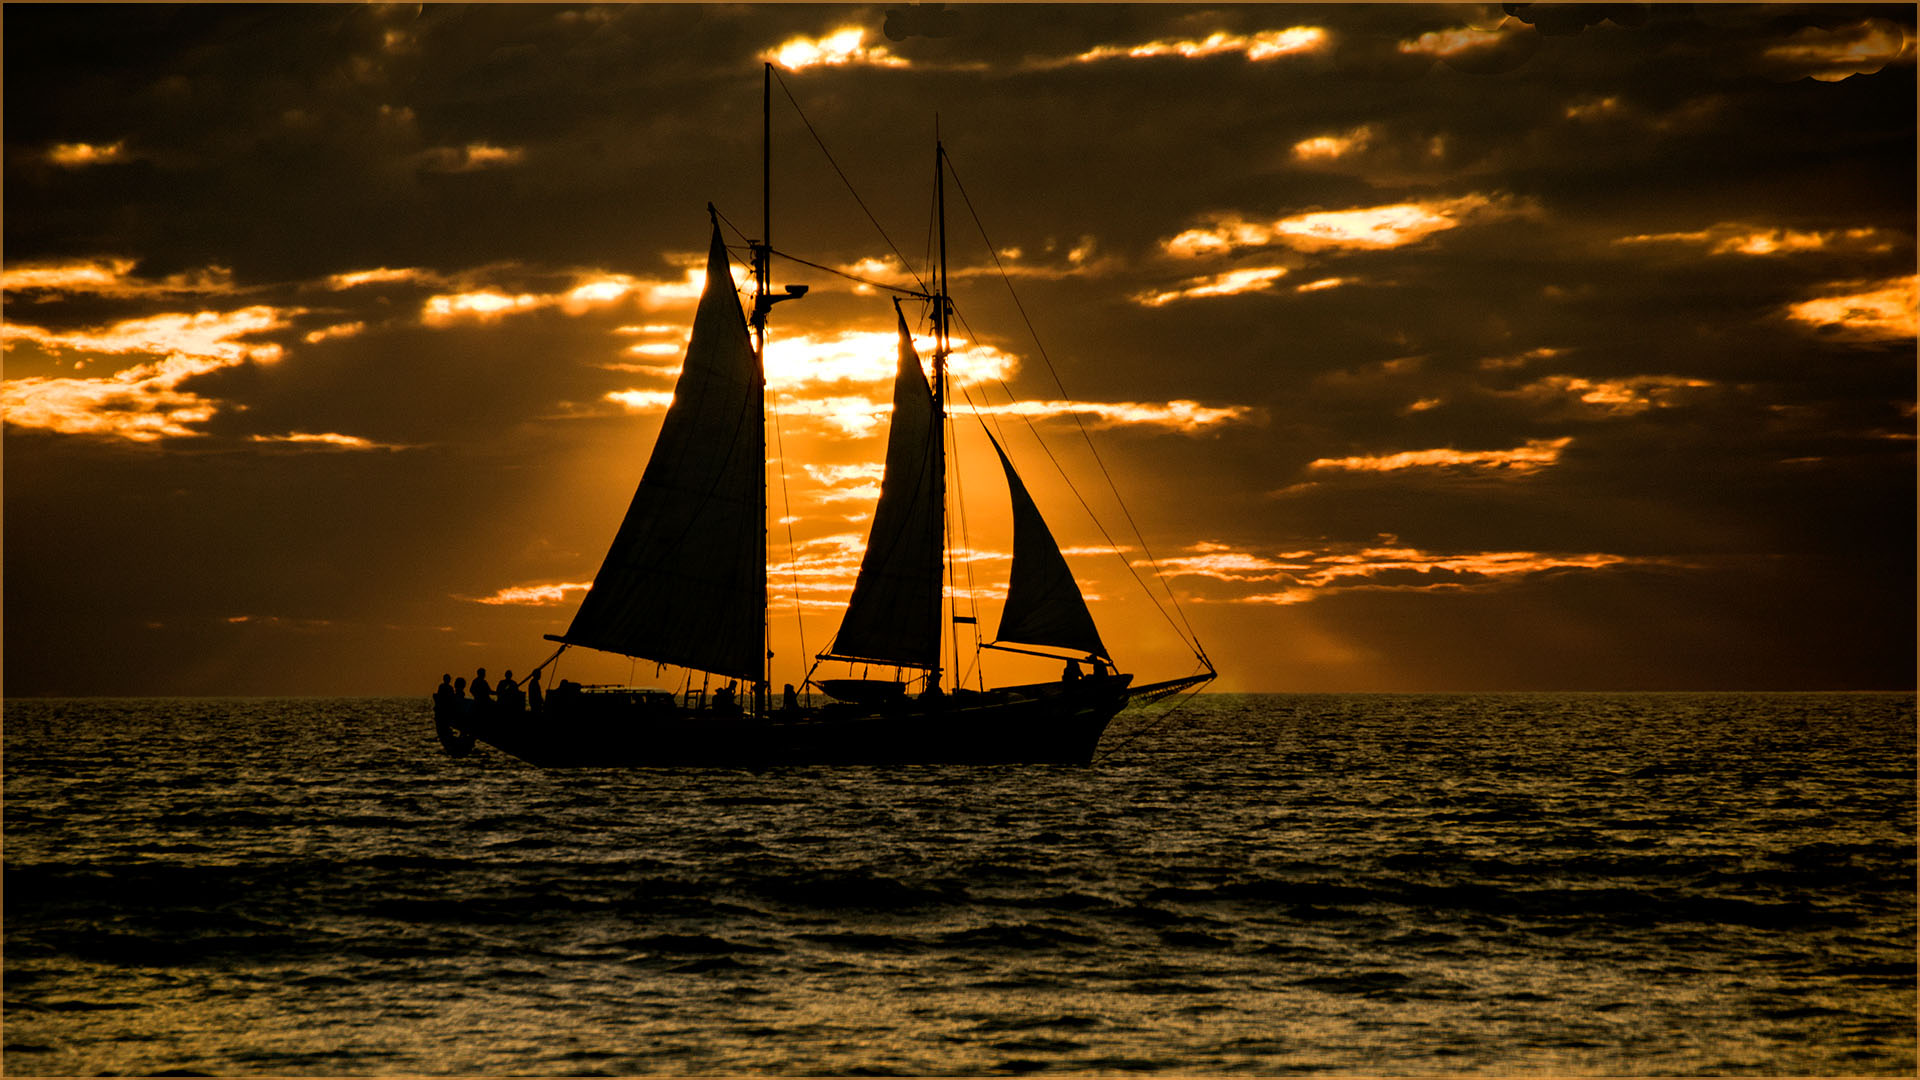 Open DPI_Sunset and Champagne Cruise Broome_Malcolm Bunzli_Ag MERITr